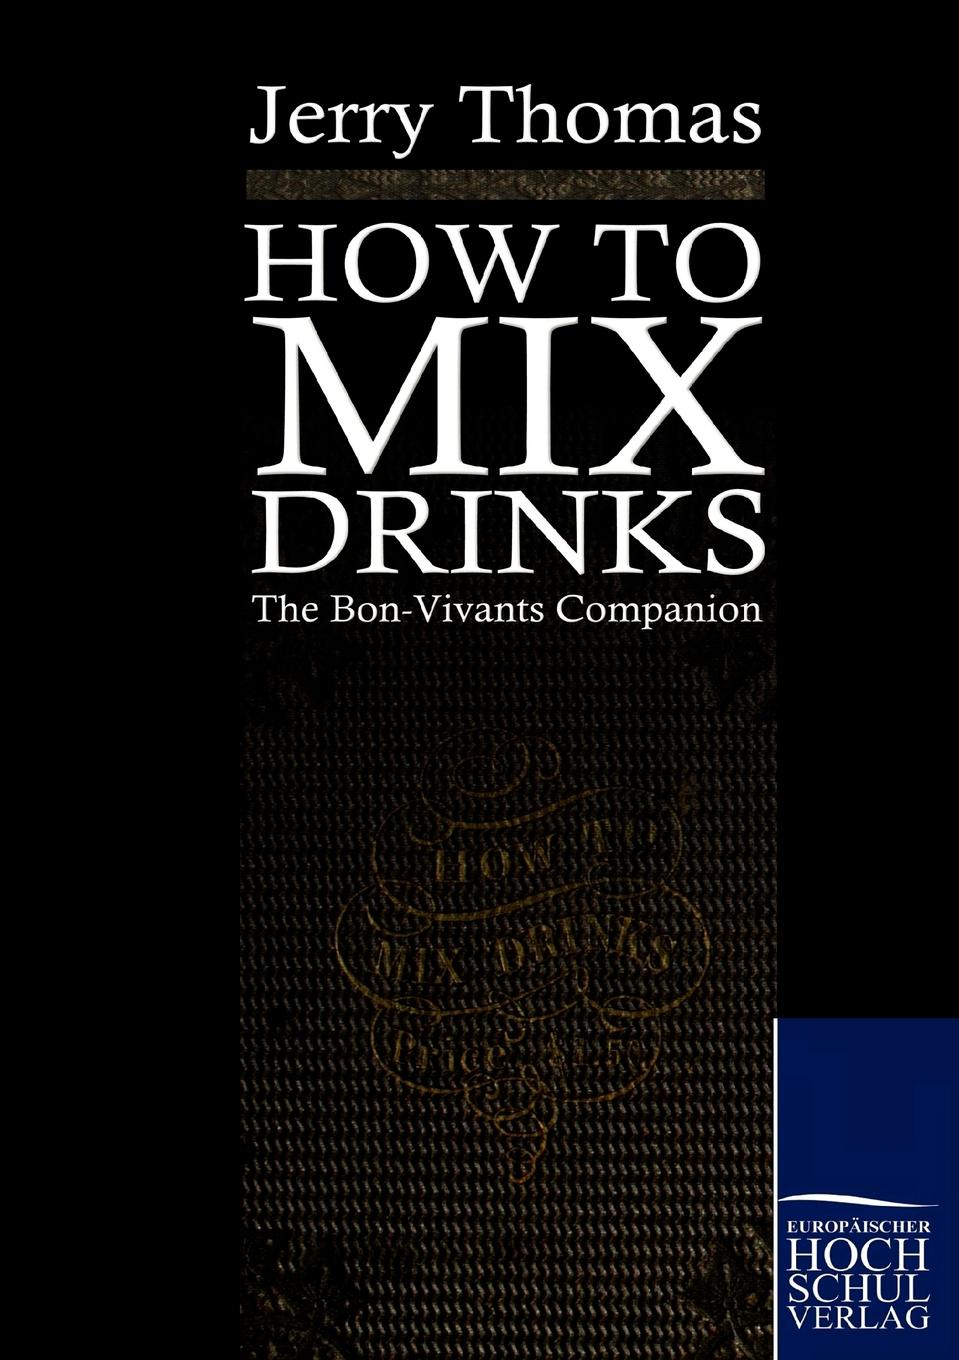 Jerry Thomas How to mix drinks jerry thomas jerry thomas bartenders guide 1887 reprint